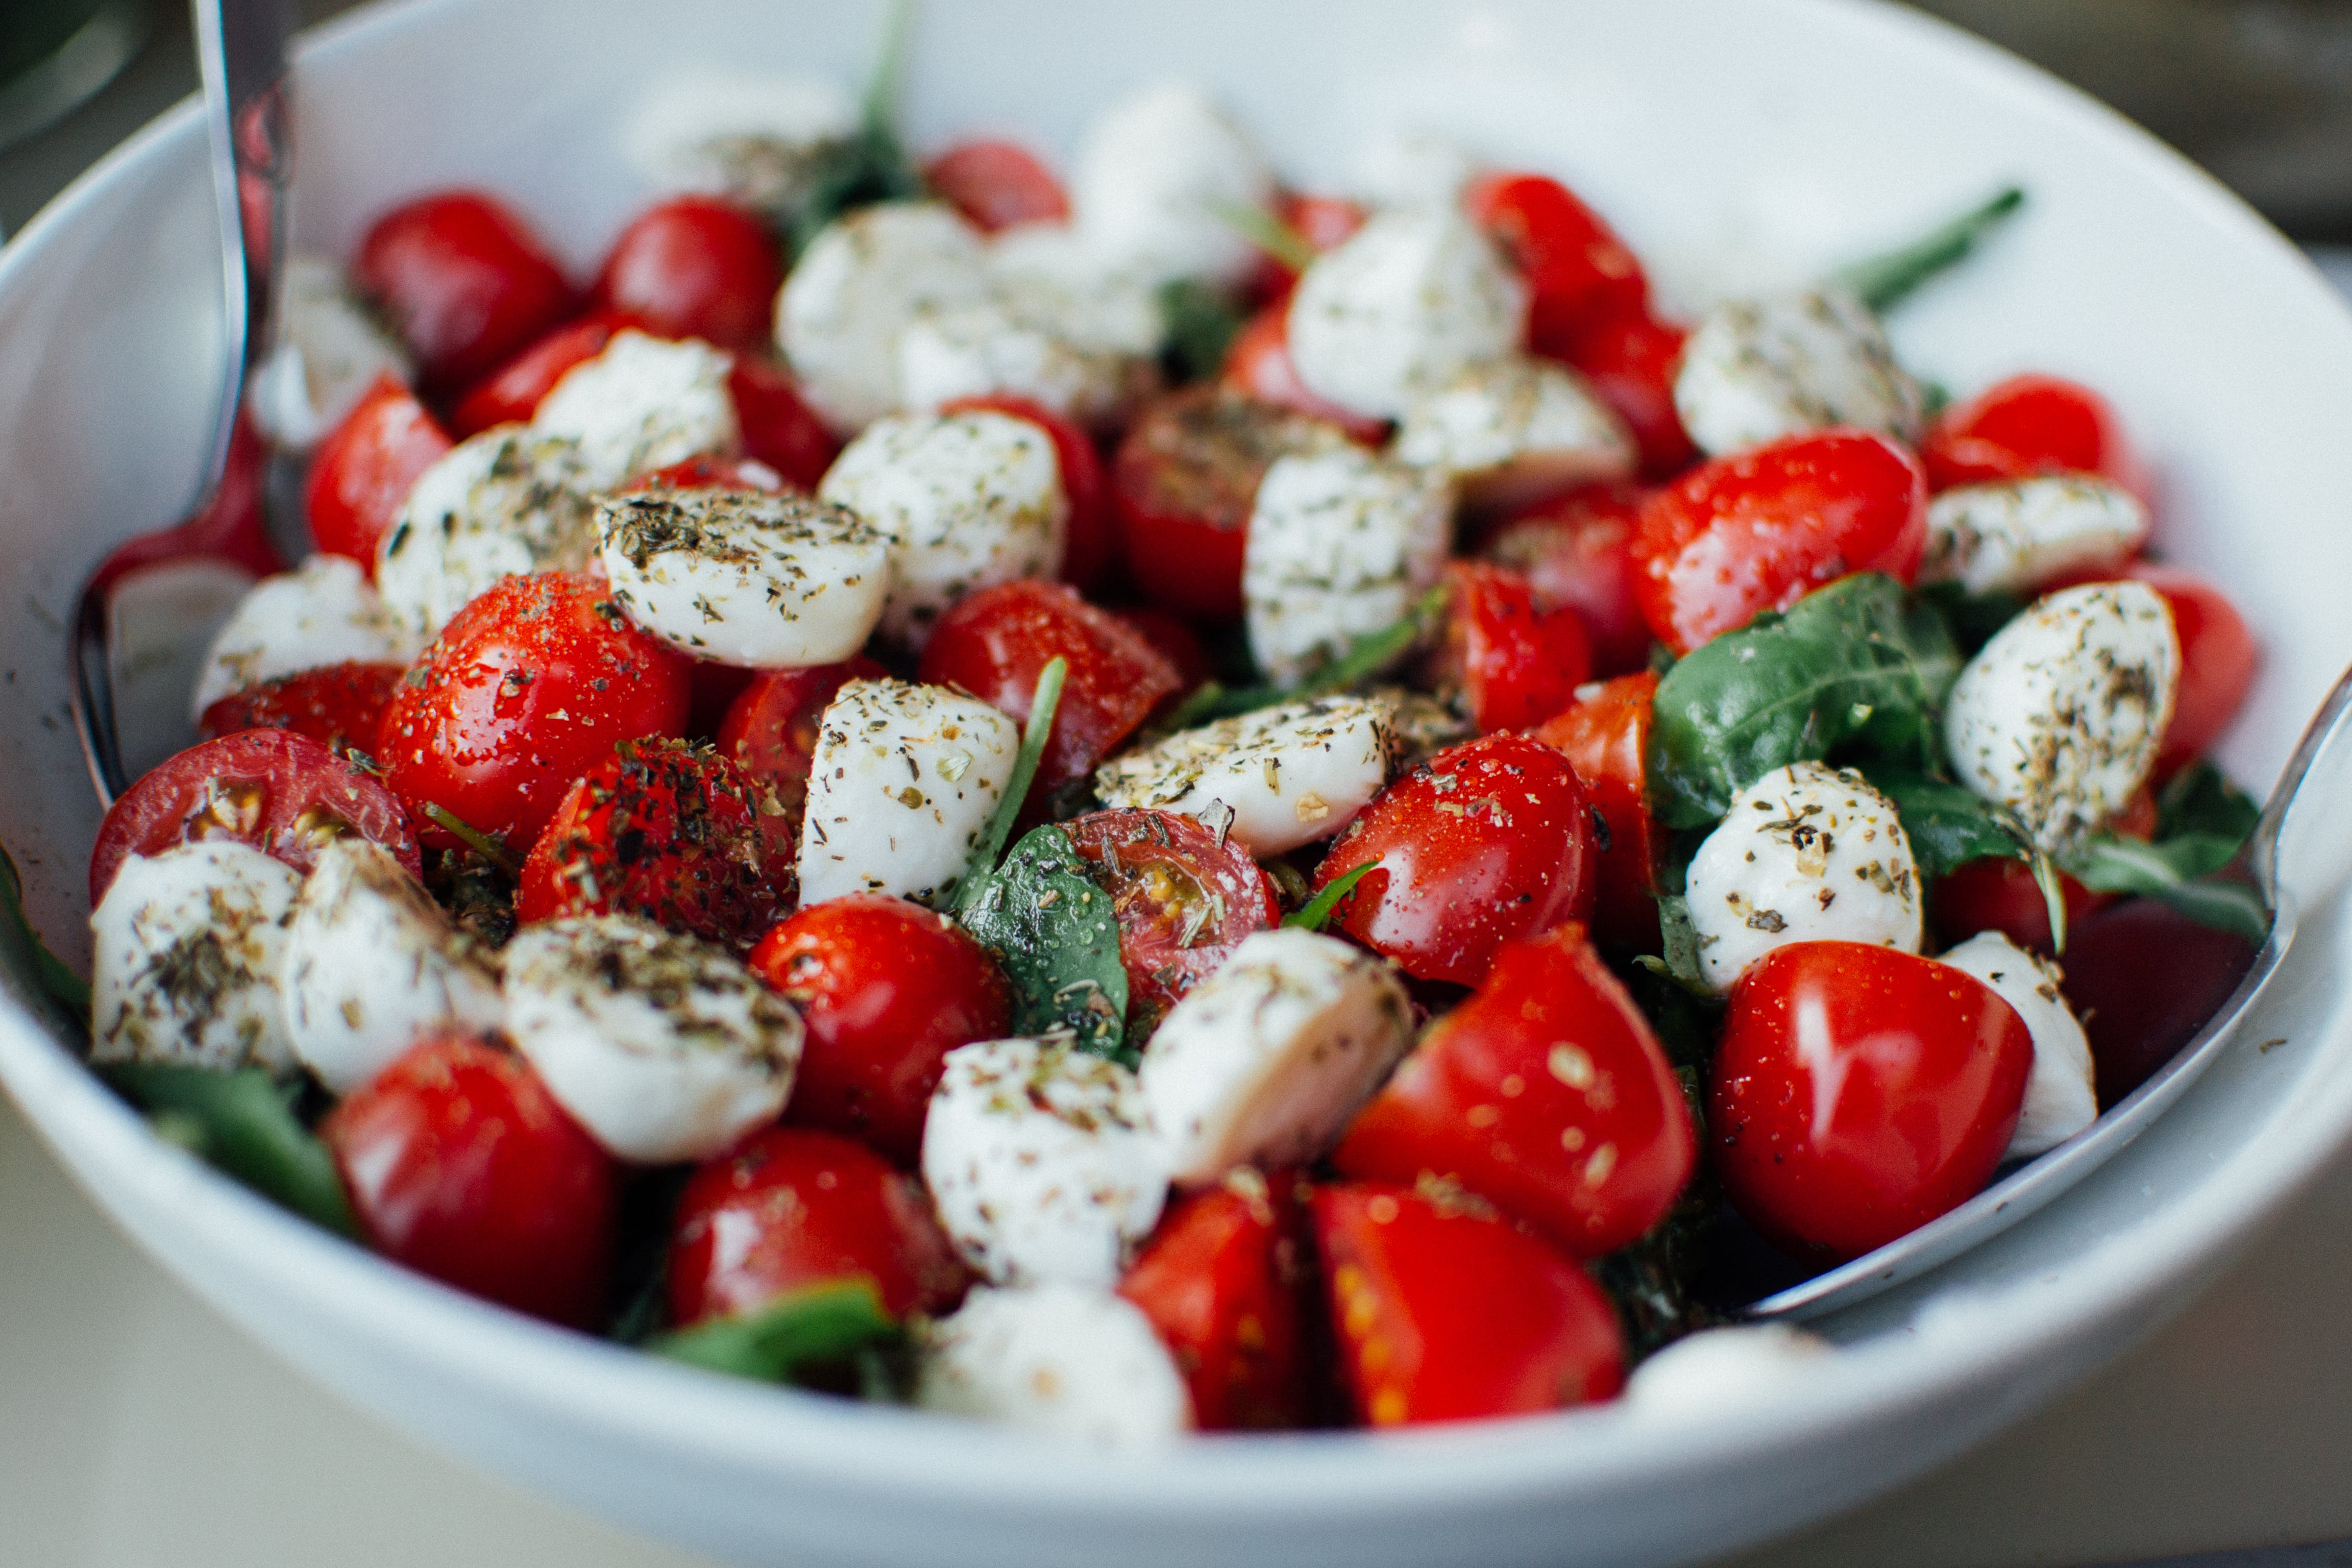 Free stock photo of food, salad, healthy, tomatoes